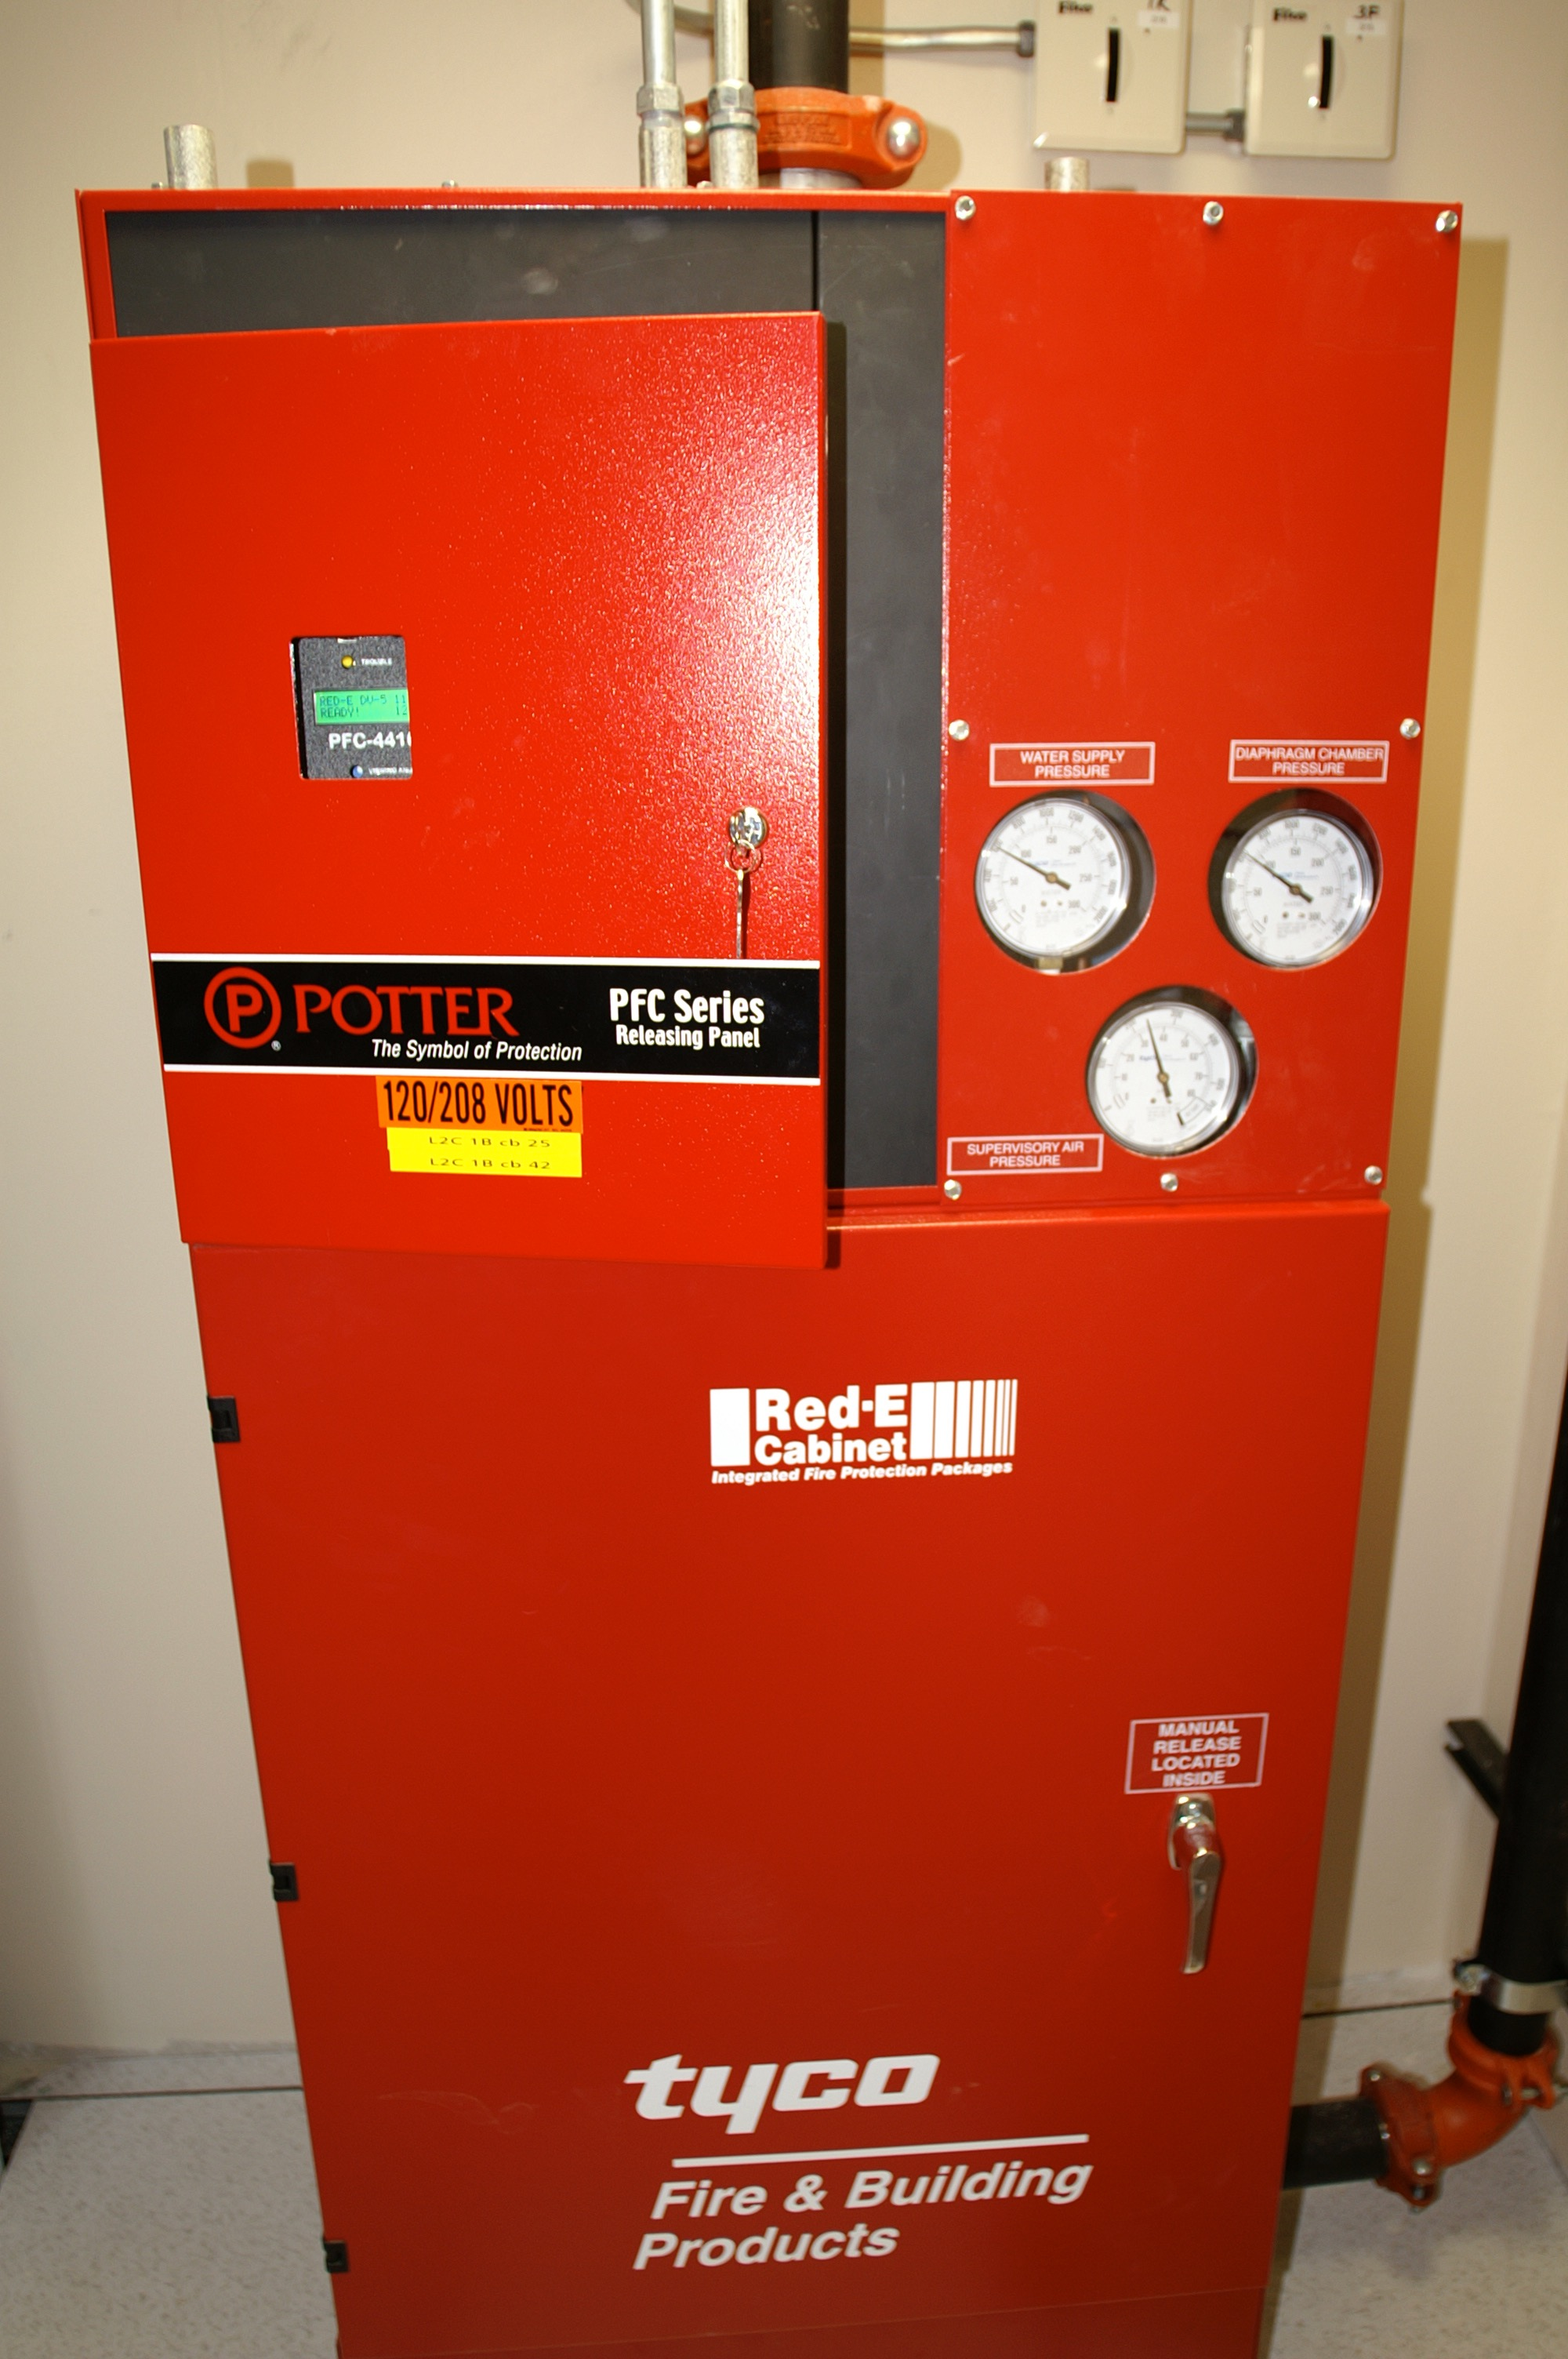 Widar Fire Protection Additionally Series Circuit Diagram Further Alarm Photograph Of The Tyco Red E Cabinet From Correlator